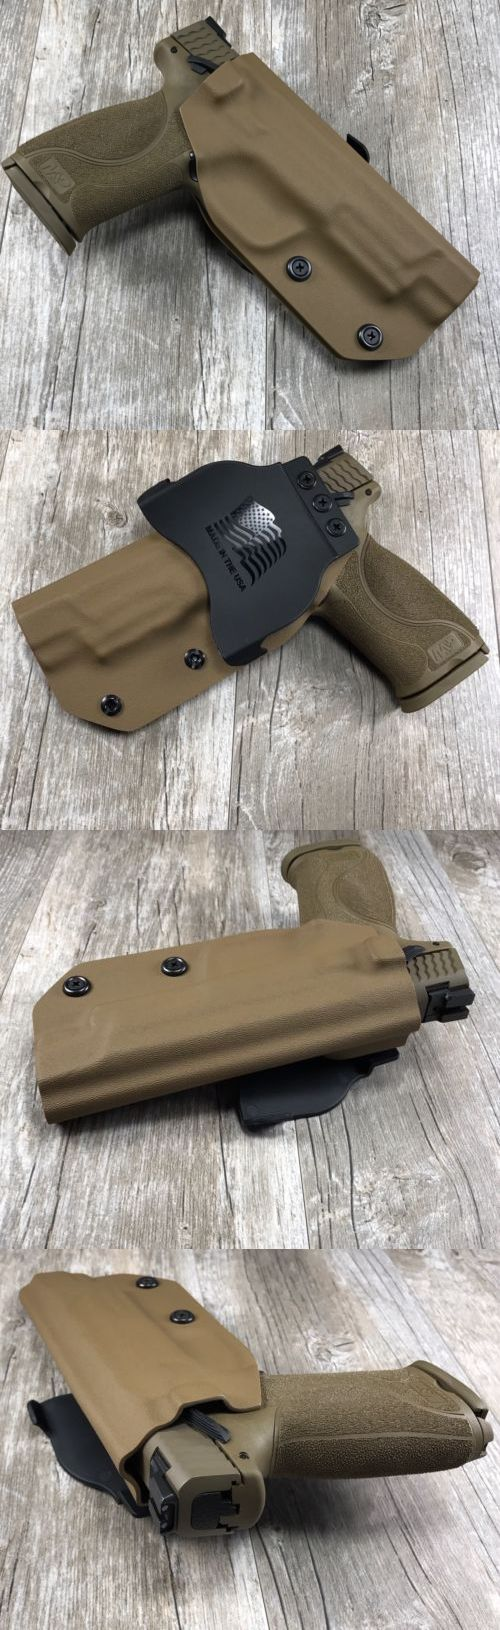 Holsters 177885: Owb Paddle Holster Smith And Wesson Mandp 9 40 And M2.0 5 Kydex Retention Conceal -> BUY IT NOW ONLY: $45.95 on eBay!